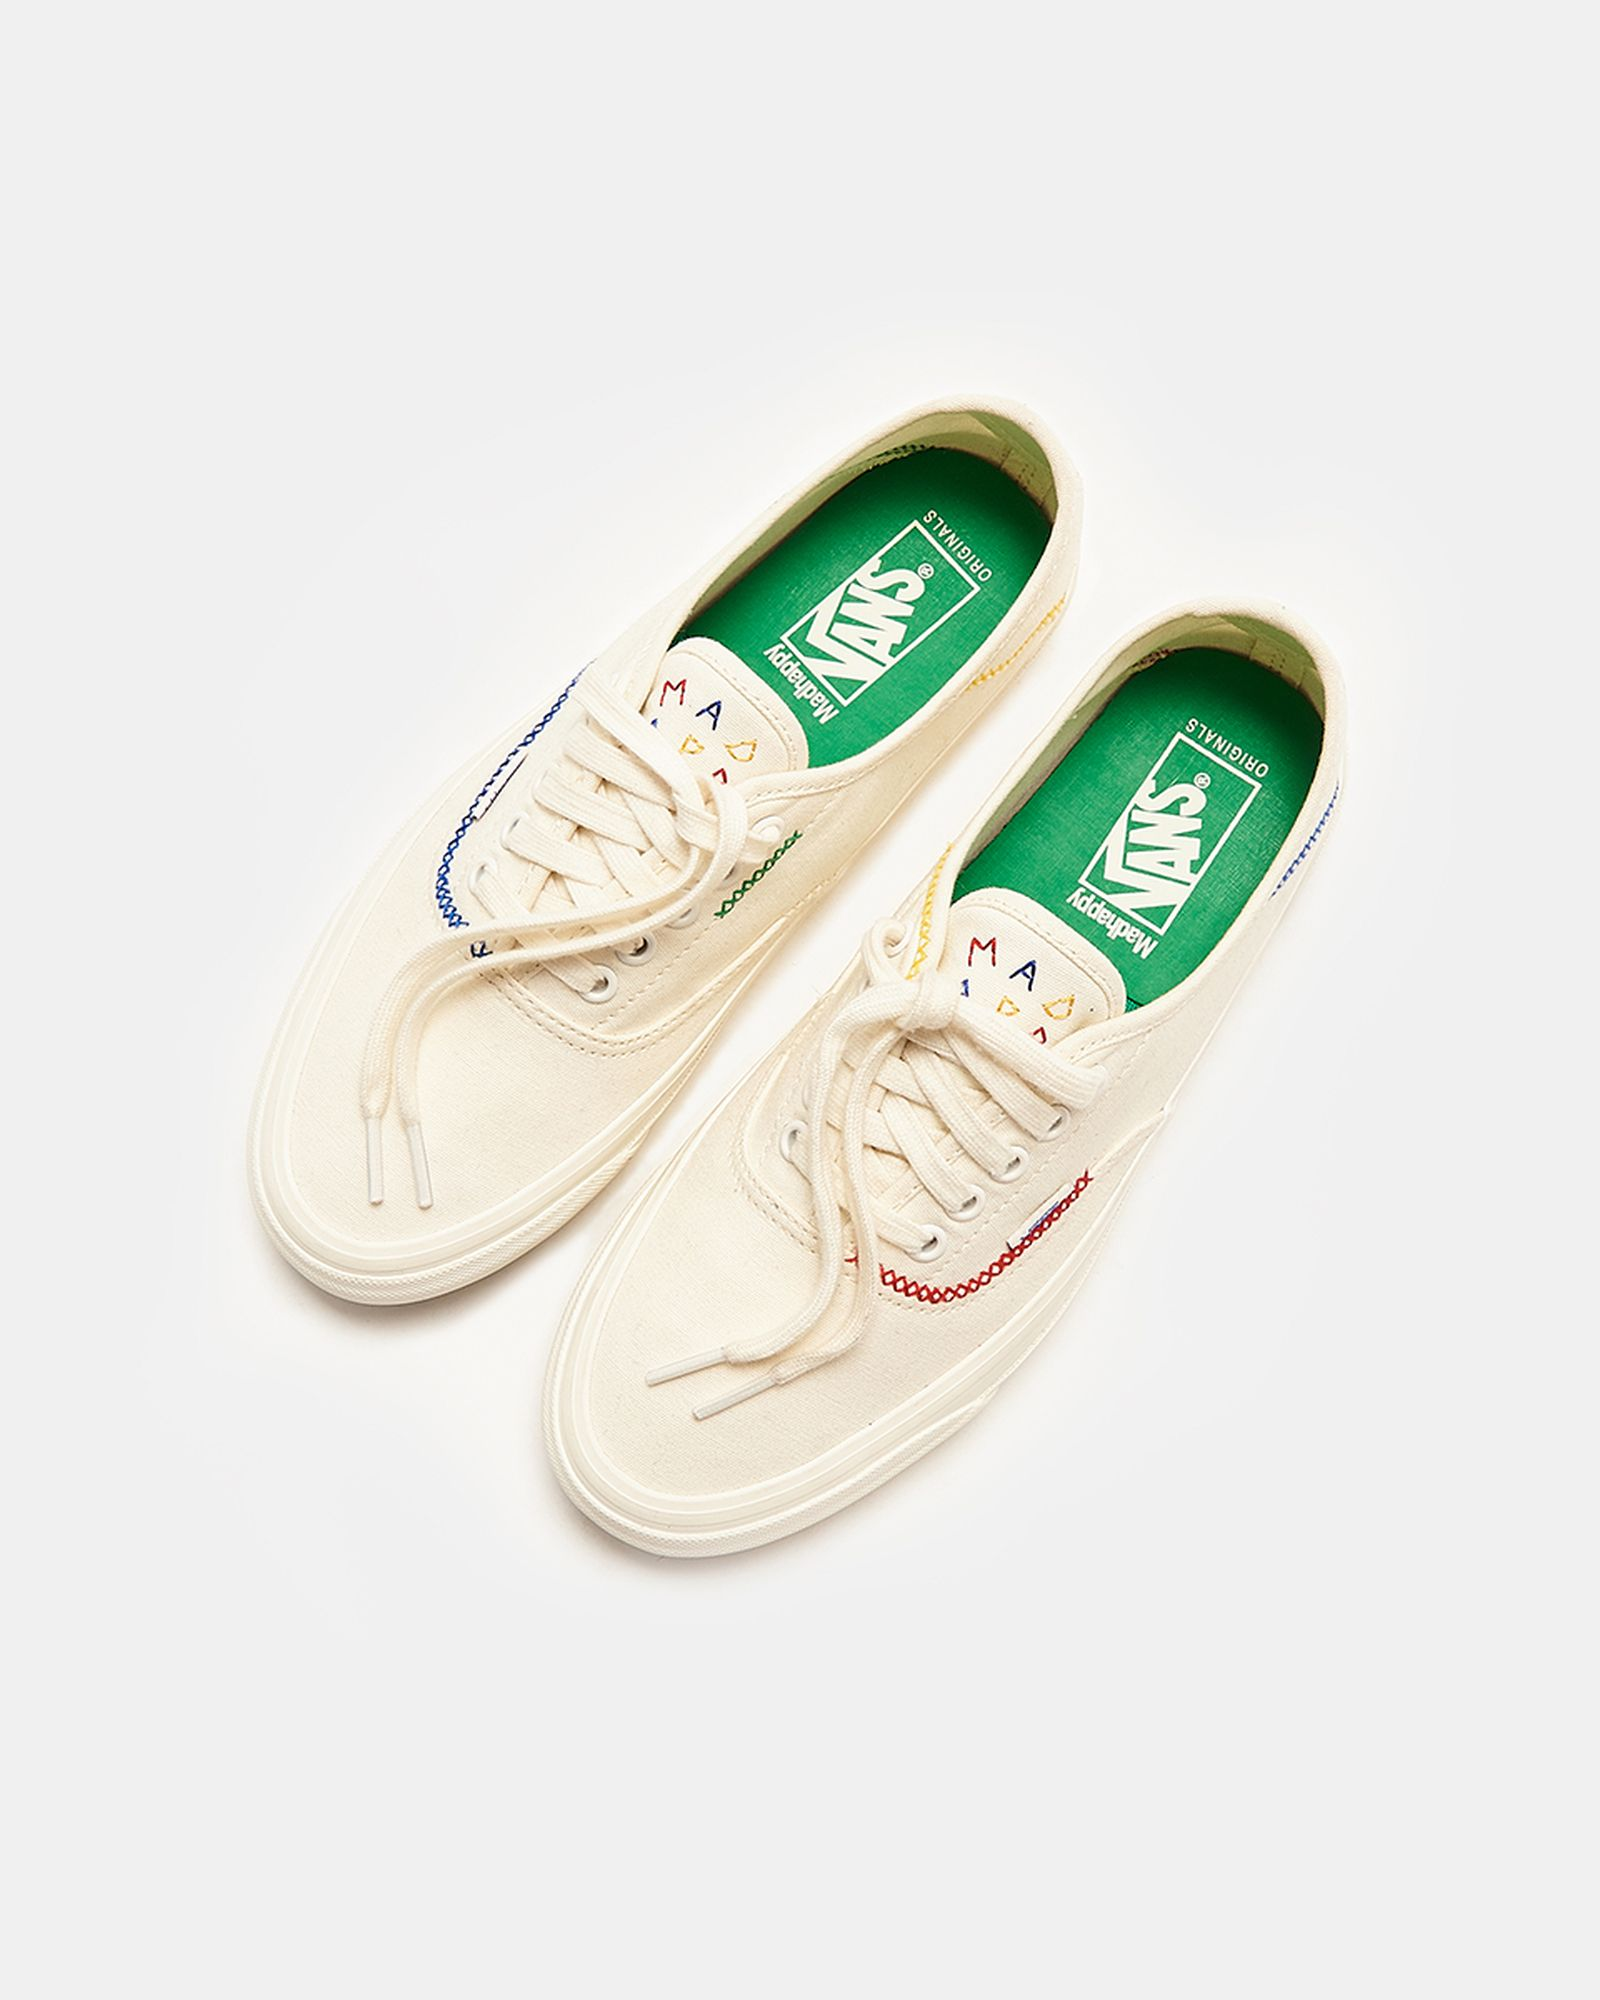 madhappy-vault-by-vans-og-style-43-lx-release-date-price-07